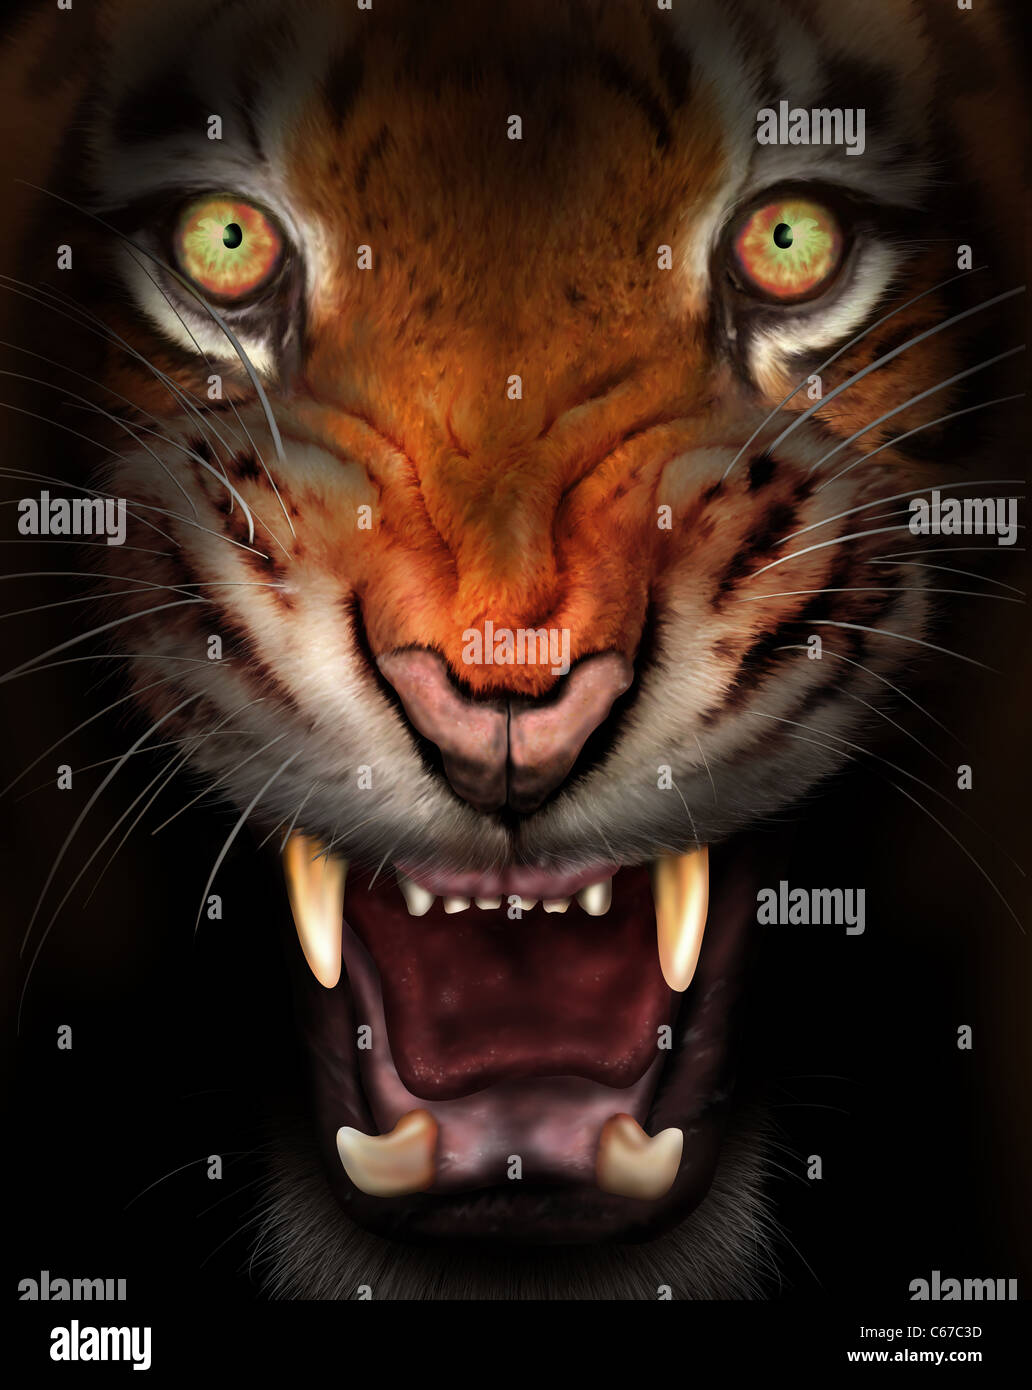 Wild tiger emerging from the dark shadows - Stock Image